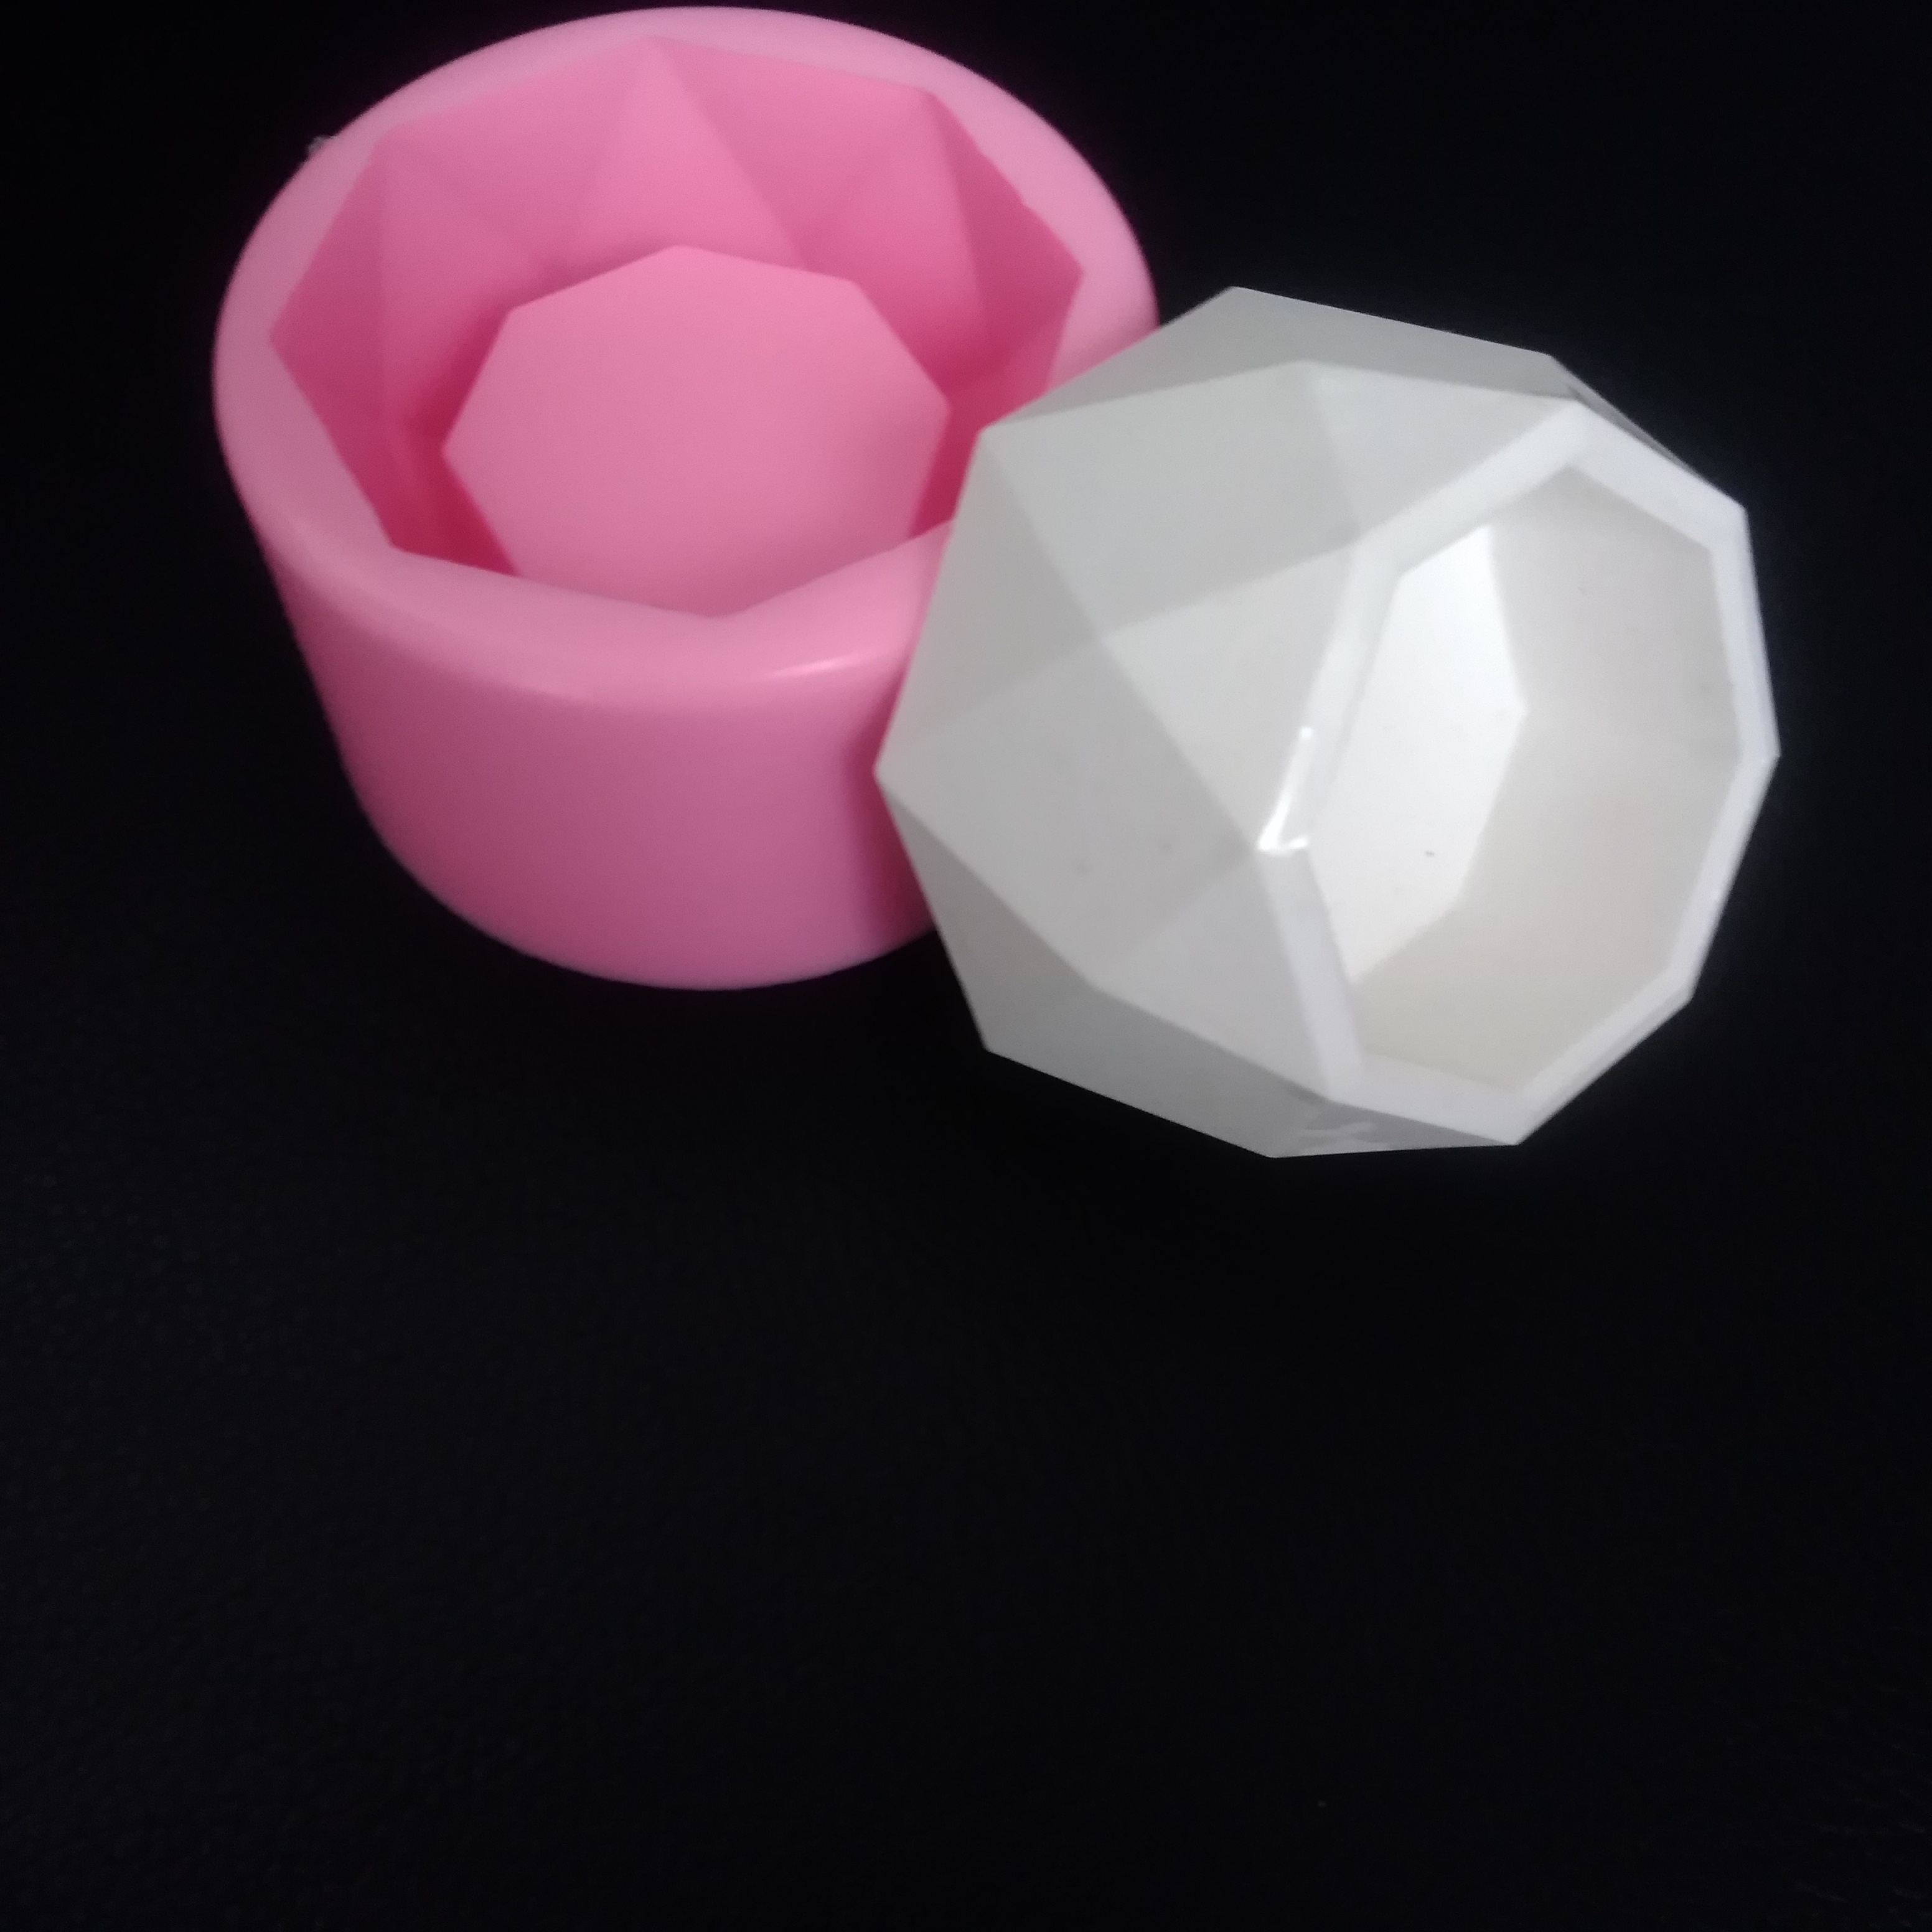 Aromatic Plaster Pot Candle Holder Silicone Molds For Concrete DIY Decorative Garden Planter Small Flowerpot Cement Mould